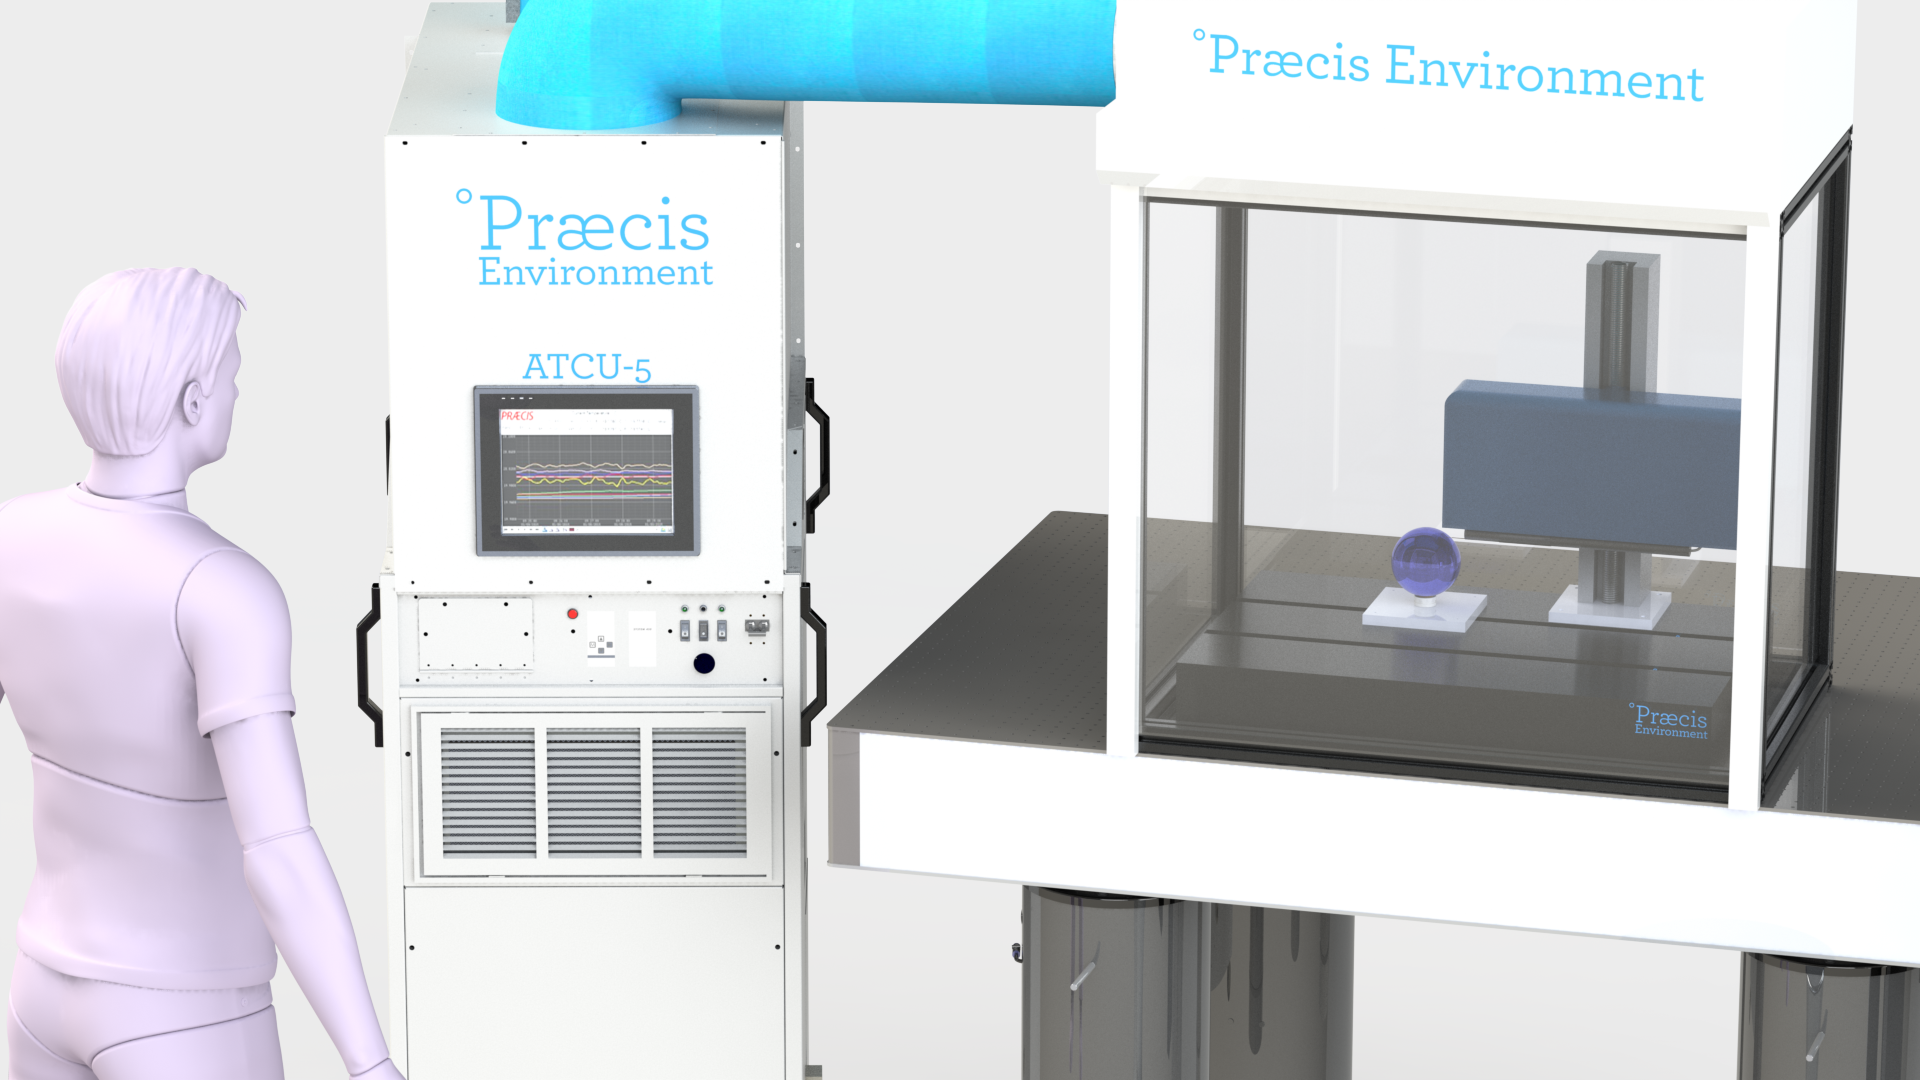 This Environment-5 Complete system houses a stylus-type profiler. Præcis d   esigned an enclosure that fits snuggly around the instrument with a roll-up clear shade on the front.